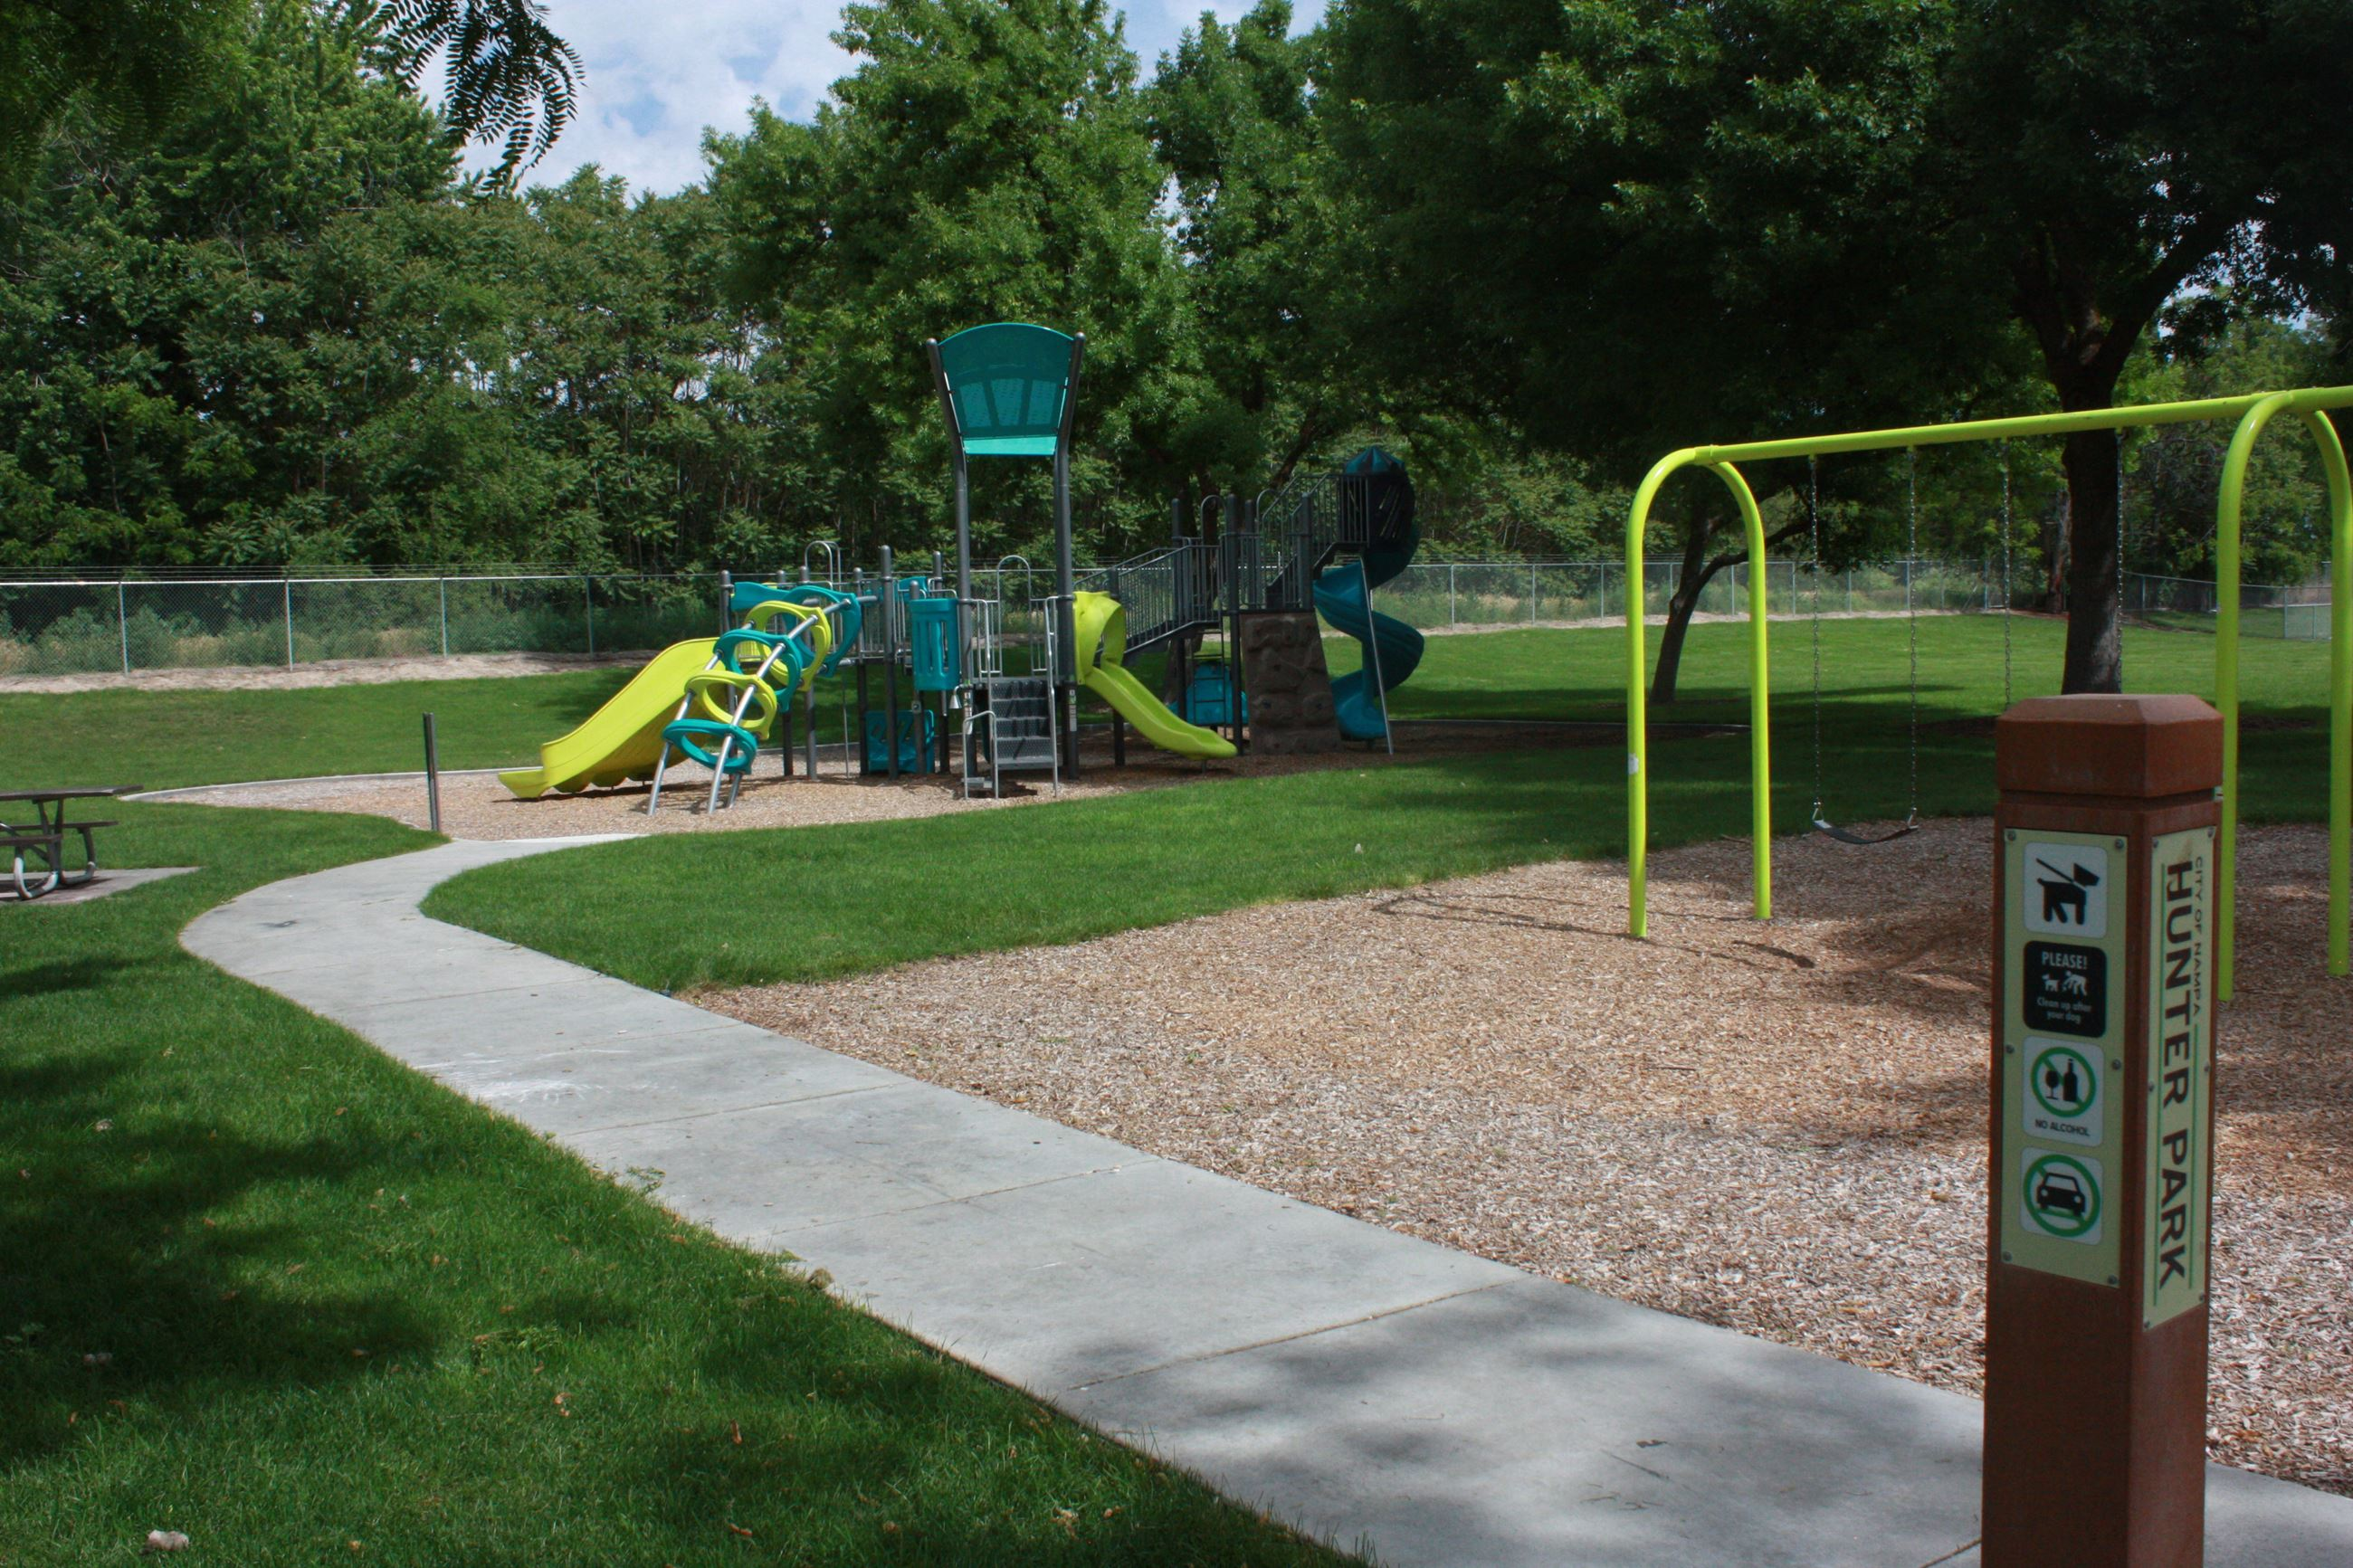 Green and teal play structure